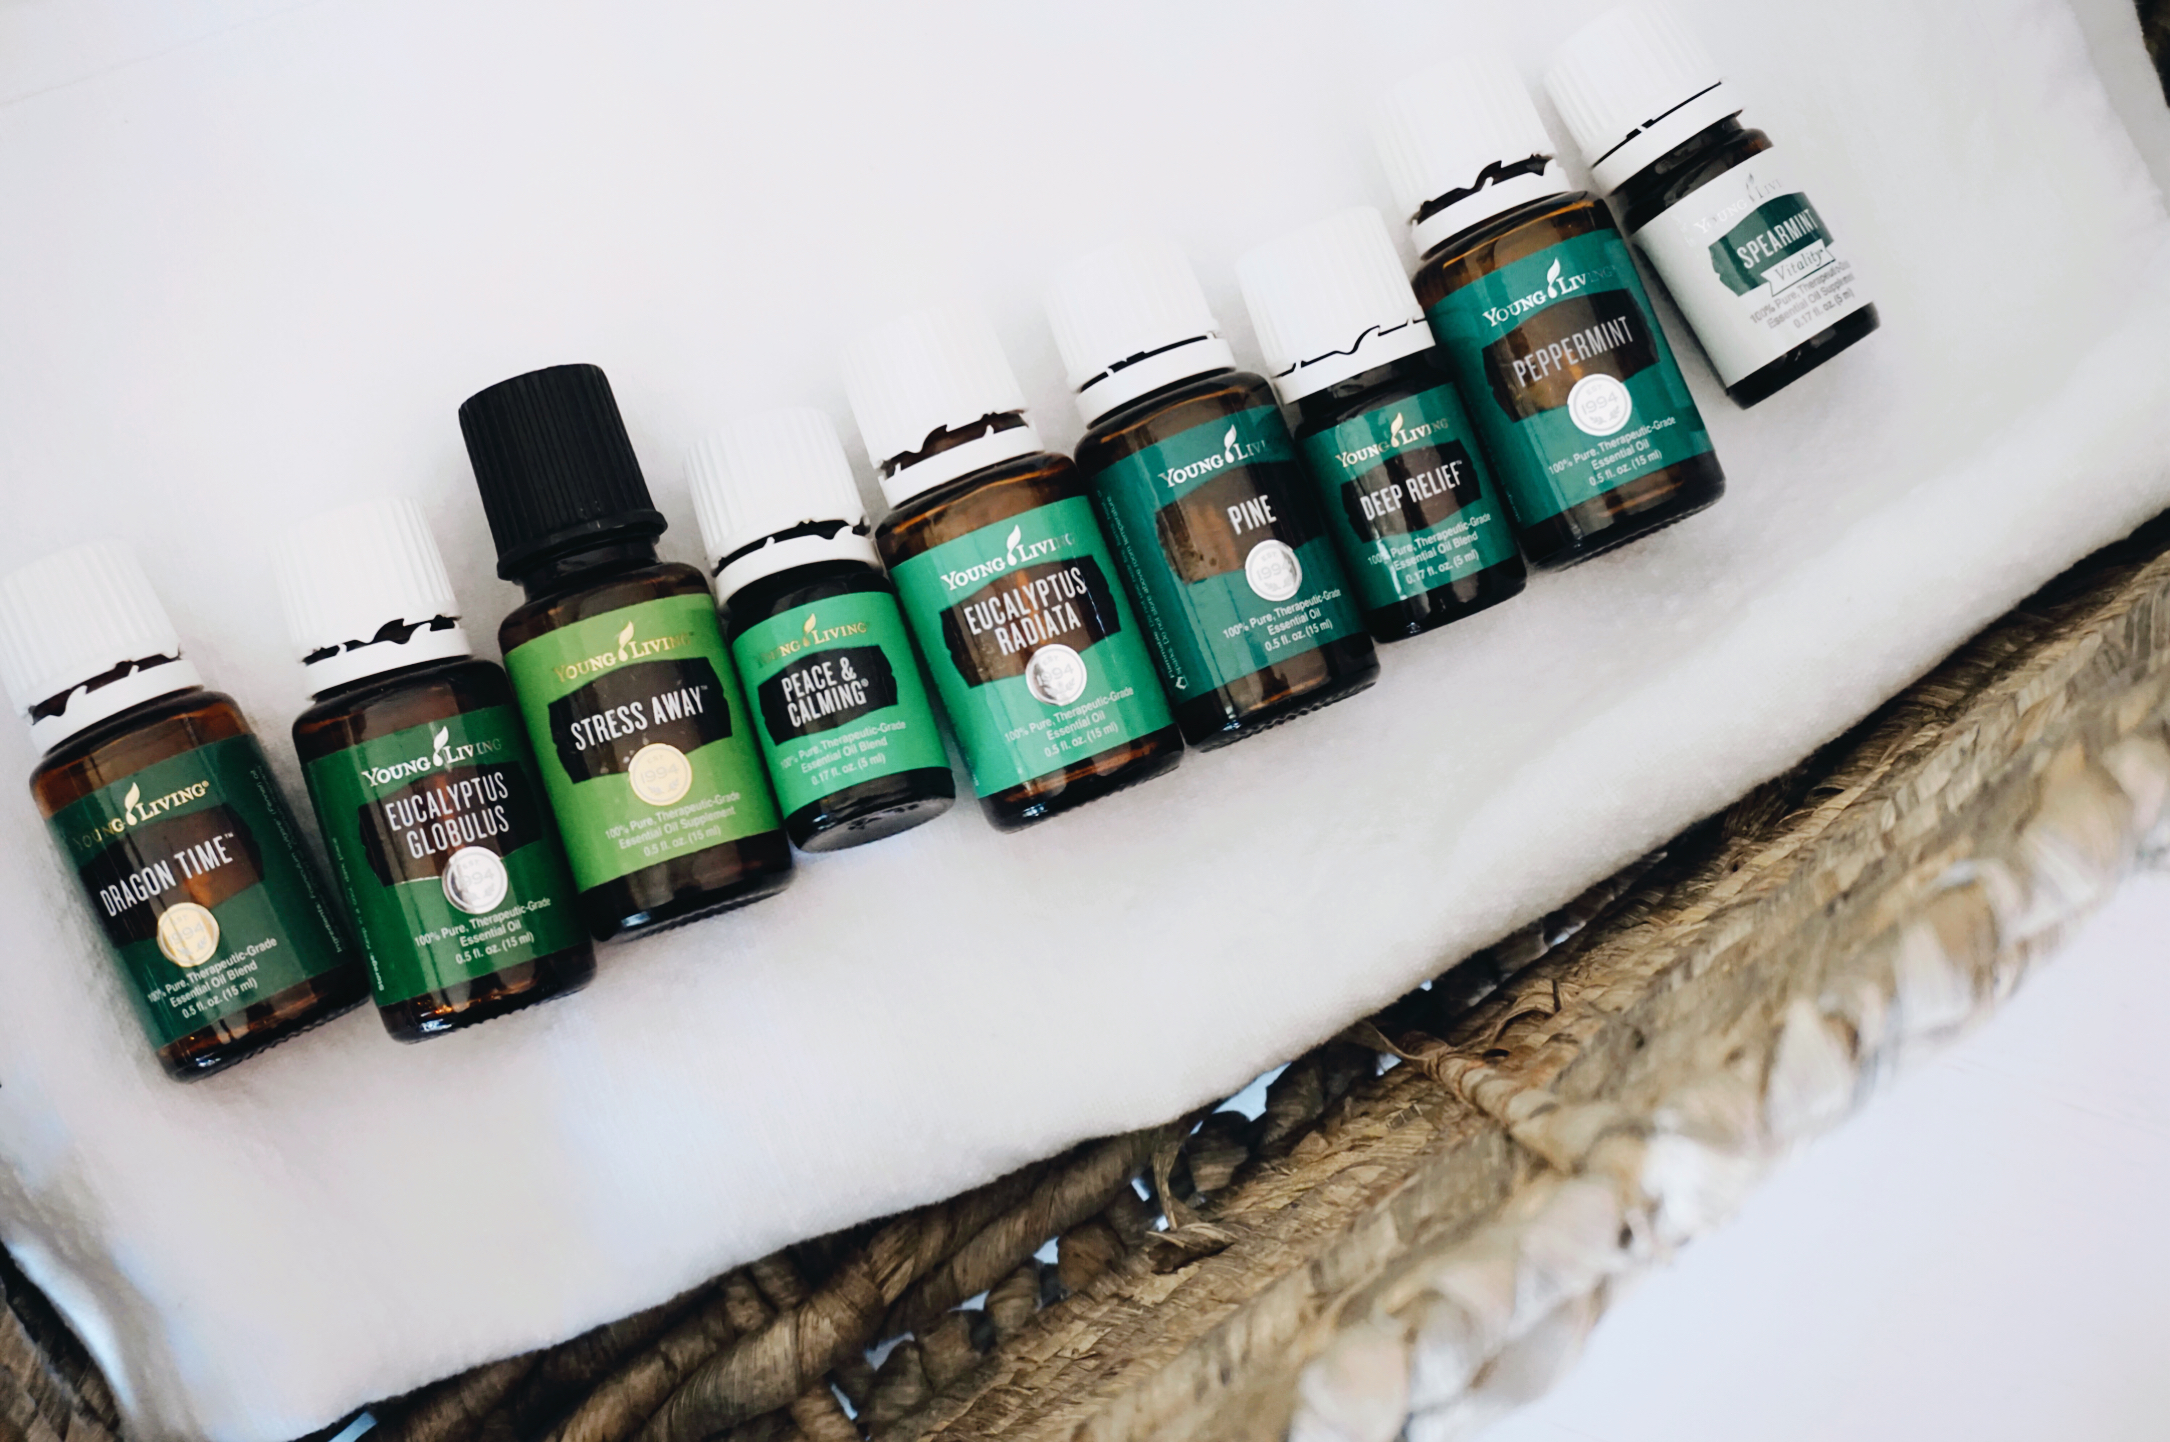 Essential Oils for St. Patrick's Day! It's a green theme of oils for health and wellness and how these bottles of gold and support your family health daily.